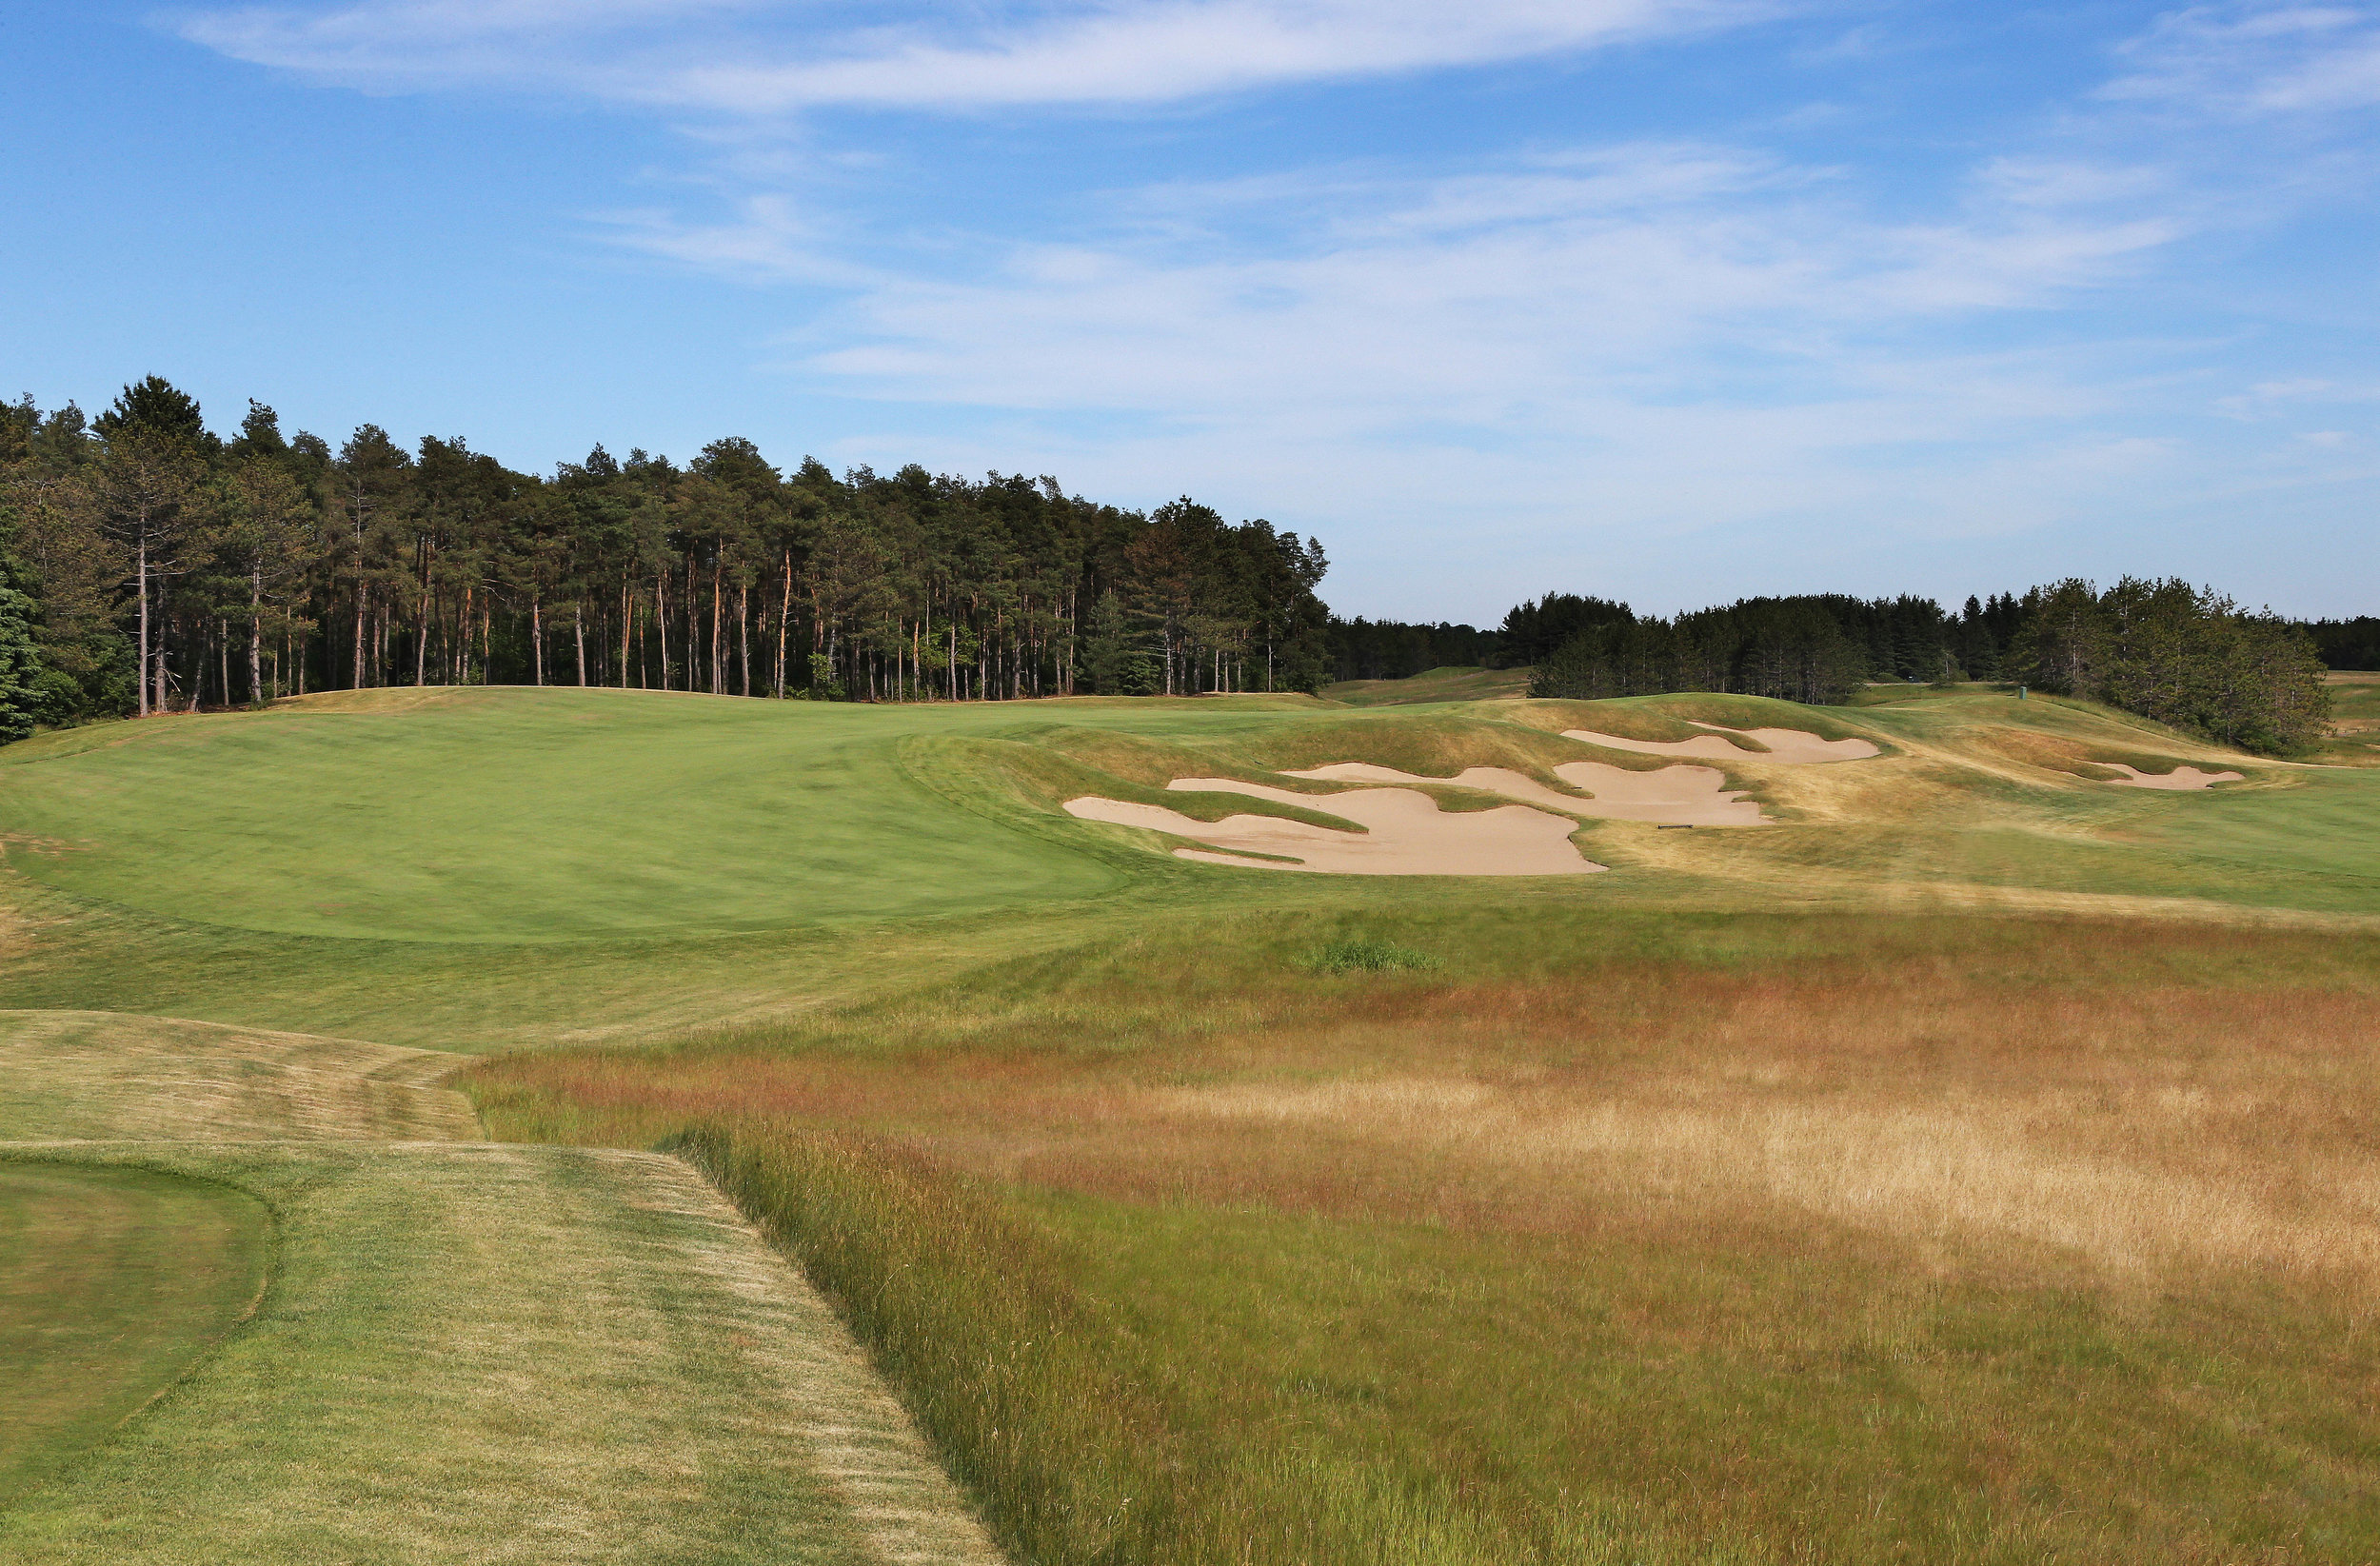 The 18th tee (Photo by Claus Andersen)